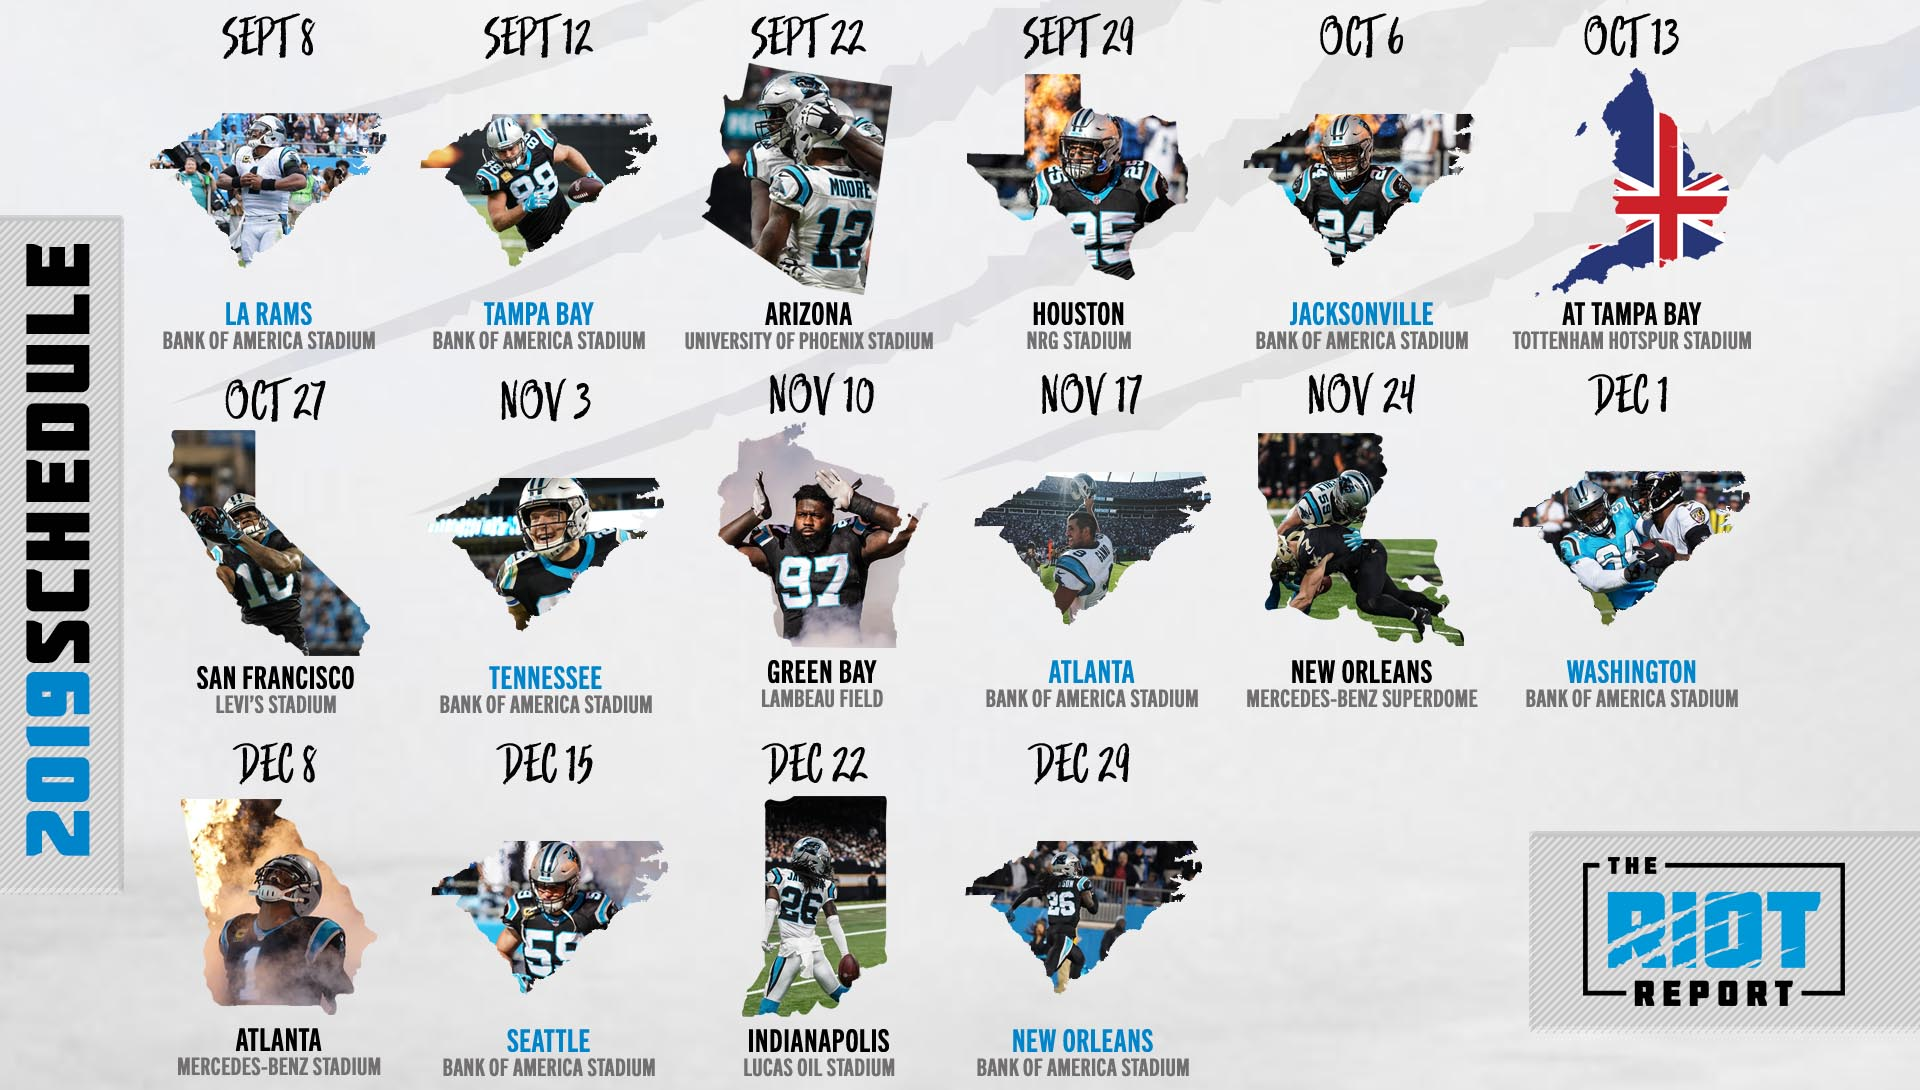 Carolina Panthers Schedule 2019 Panthers 2019 Schedule Is Set | The Riot Report